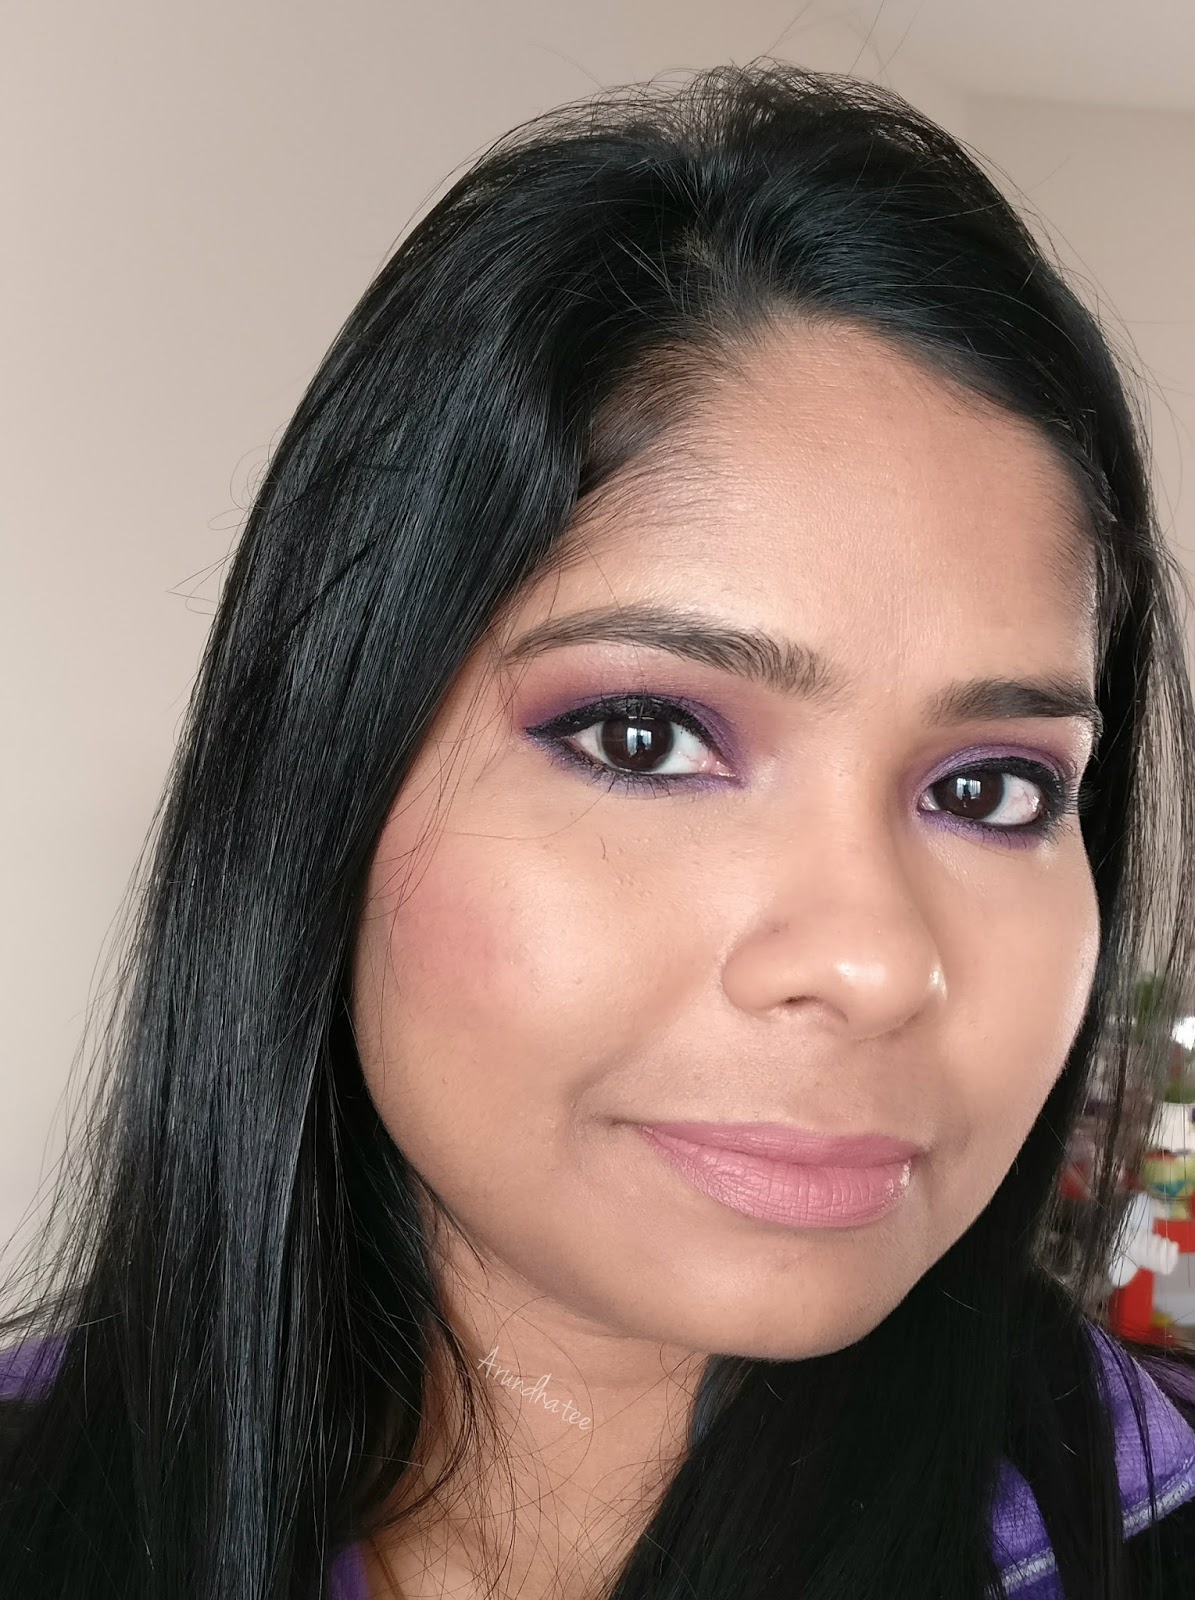 Tarteist Creamy Matte Lip Paint In Birthday Suit I Am Not Very Intrigued Liquid Lipstick So Dont Really Experiment A Lot